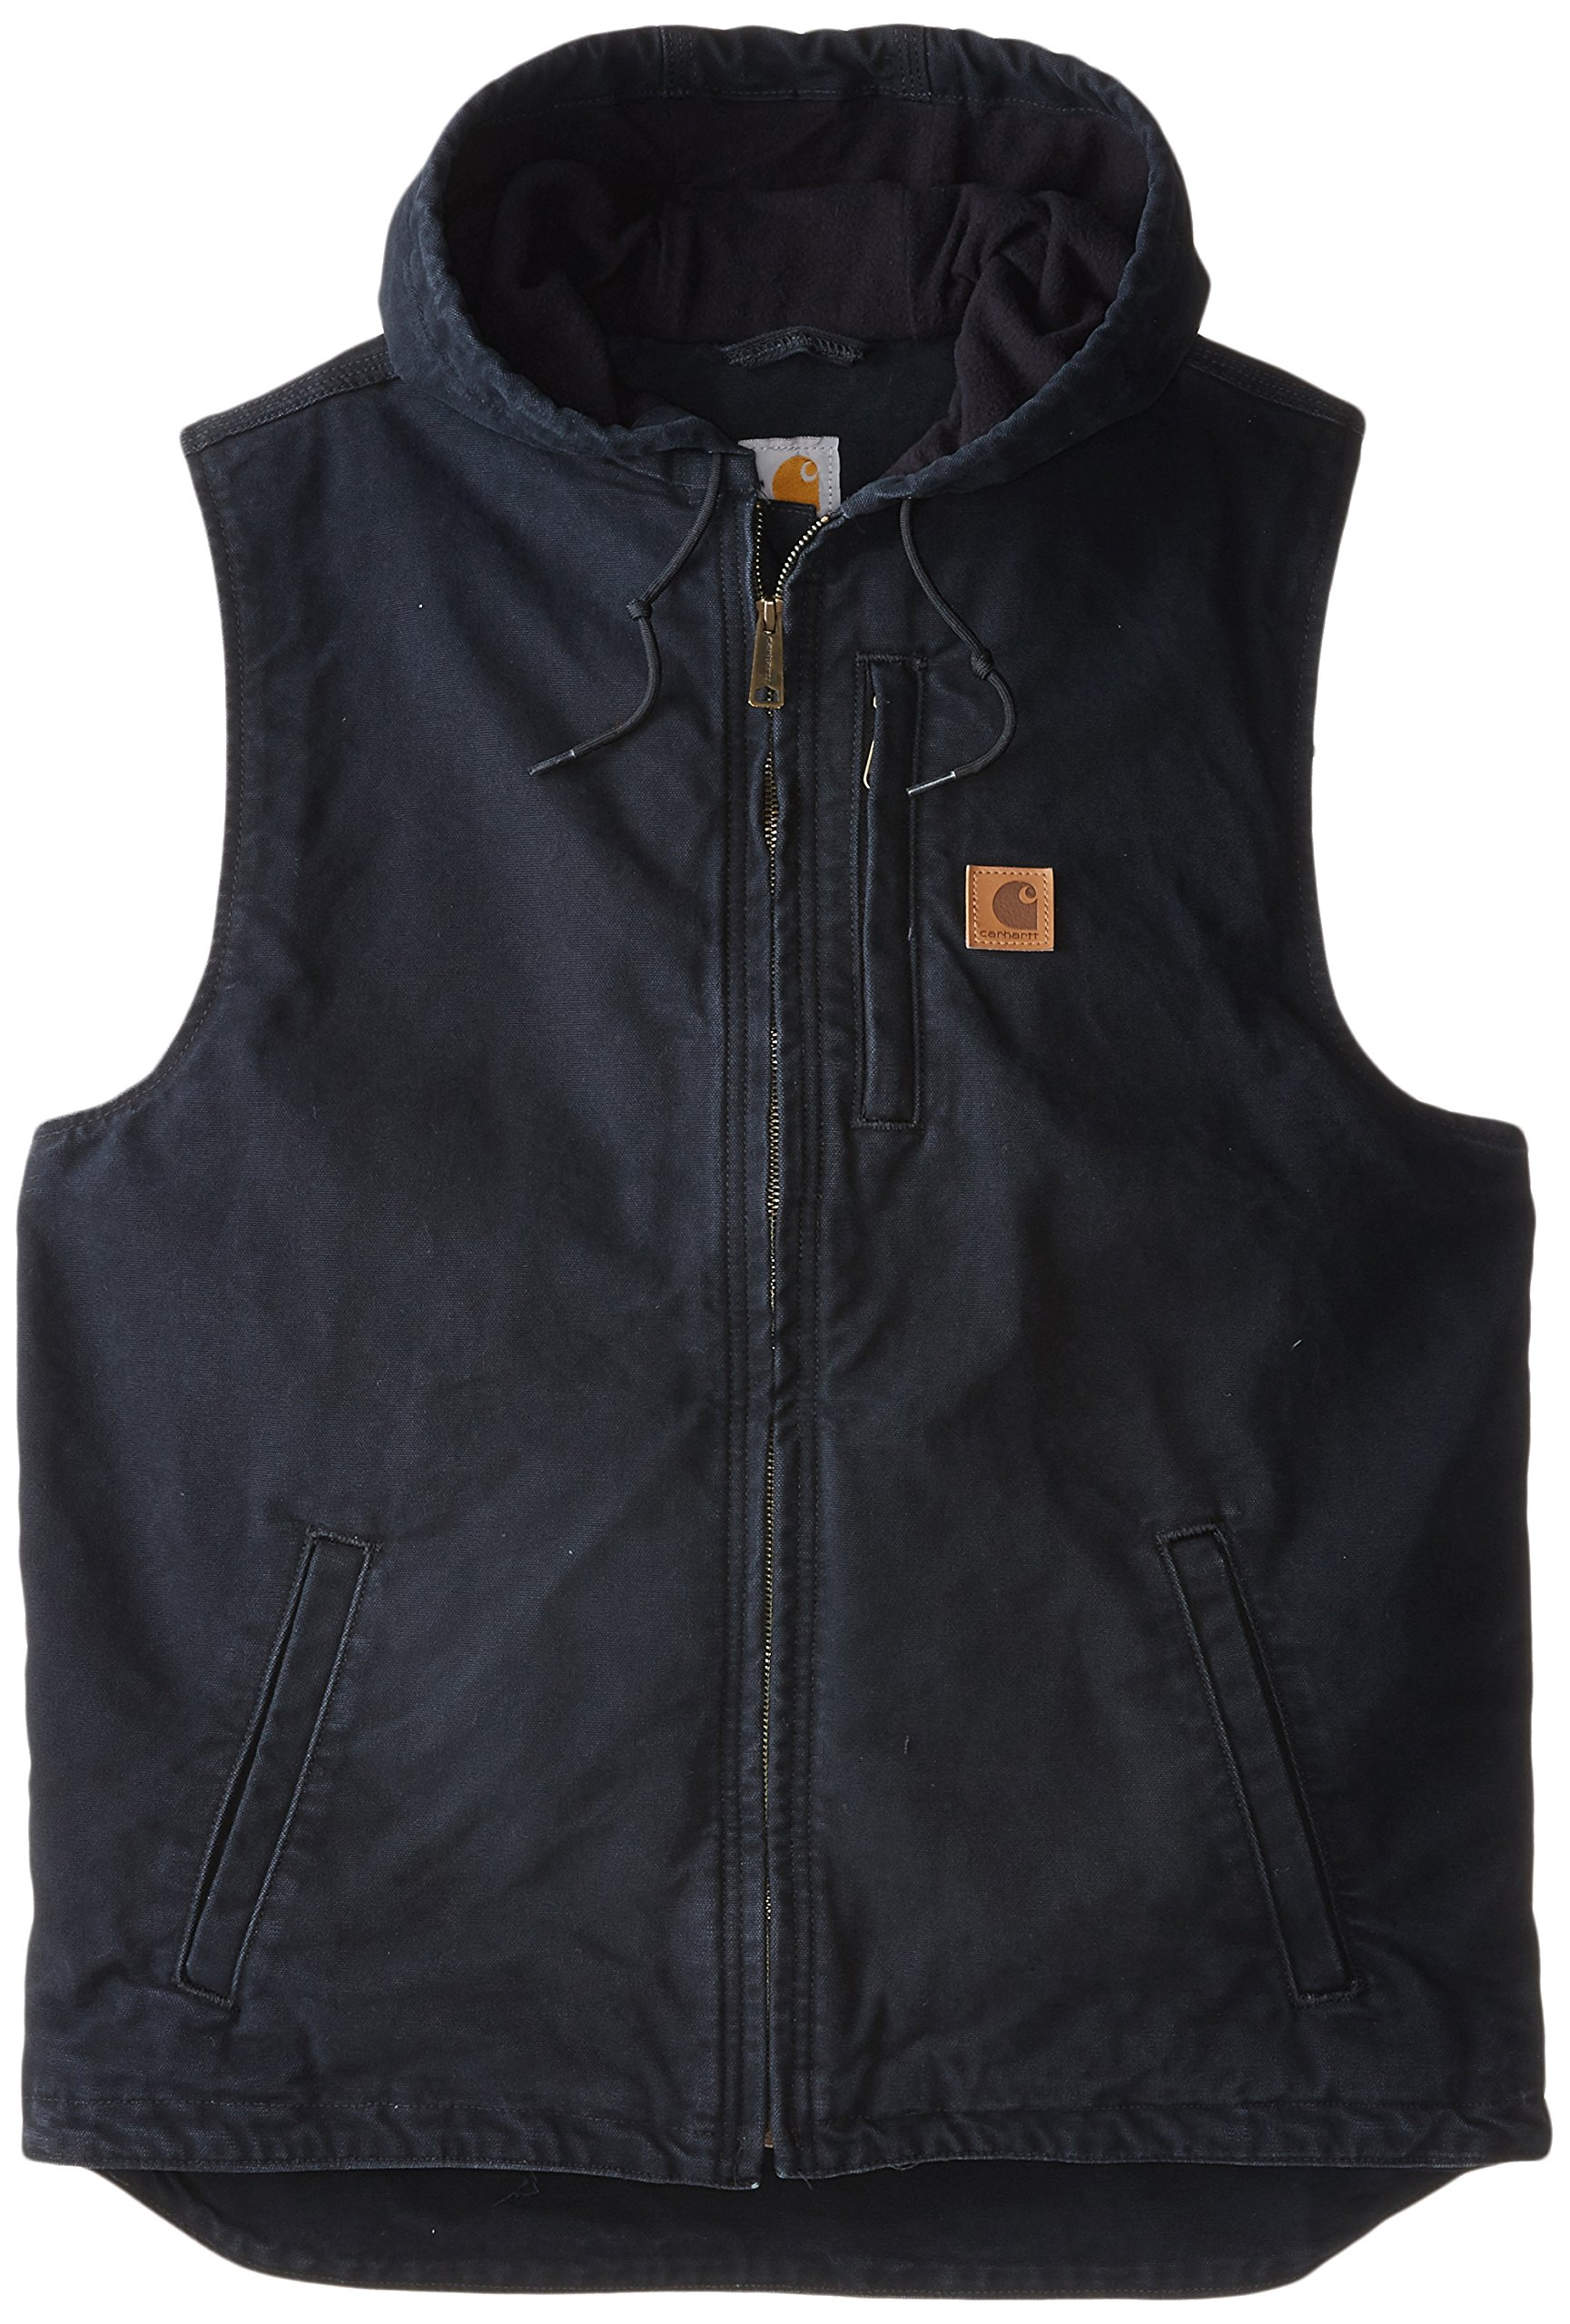 Carhartt Men's Big & Tall Knoxville Vest,Black,X-Large Tall